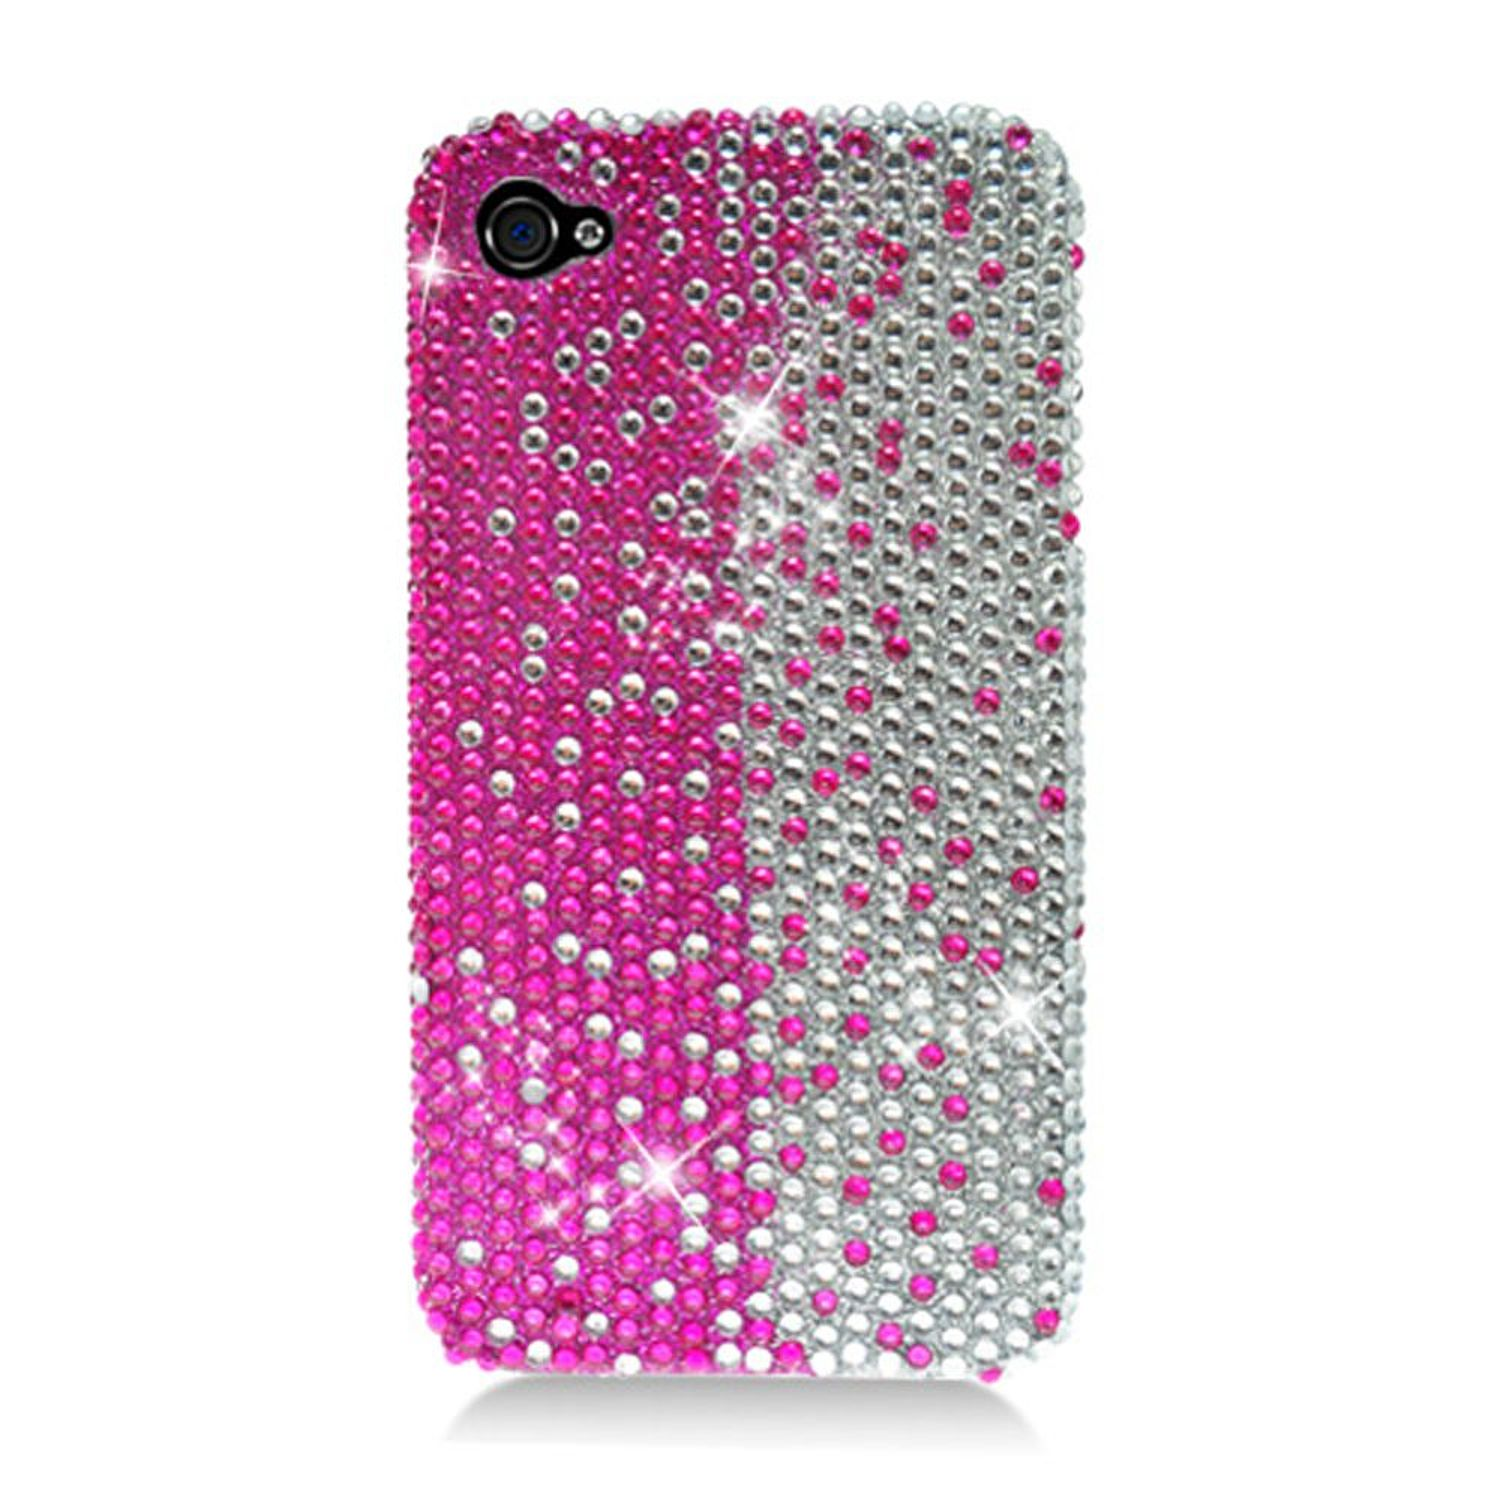 iPhone 4S Case, by Insten Full Diamond Bling Hard Snap-in Case Cover For Apple iPhone 4/4S, Hot Pink/Silver